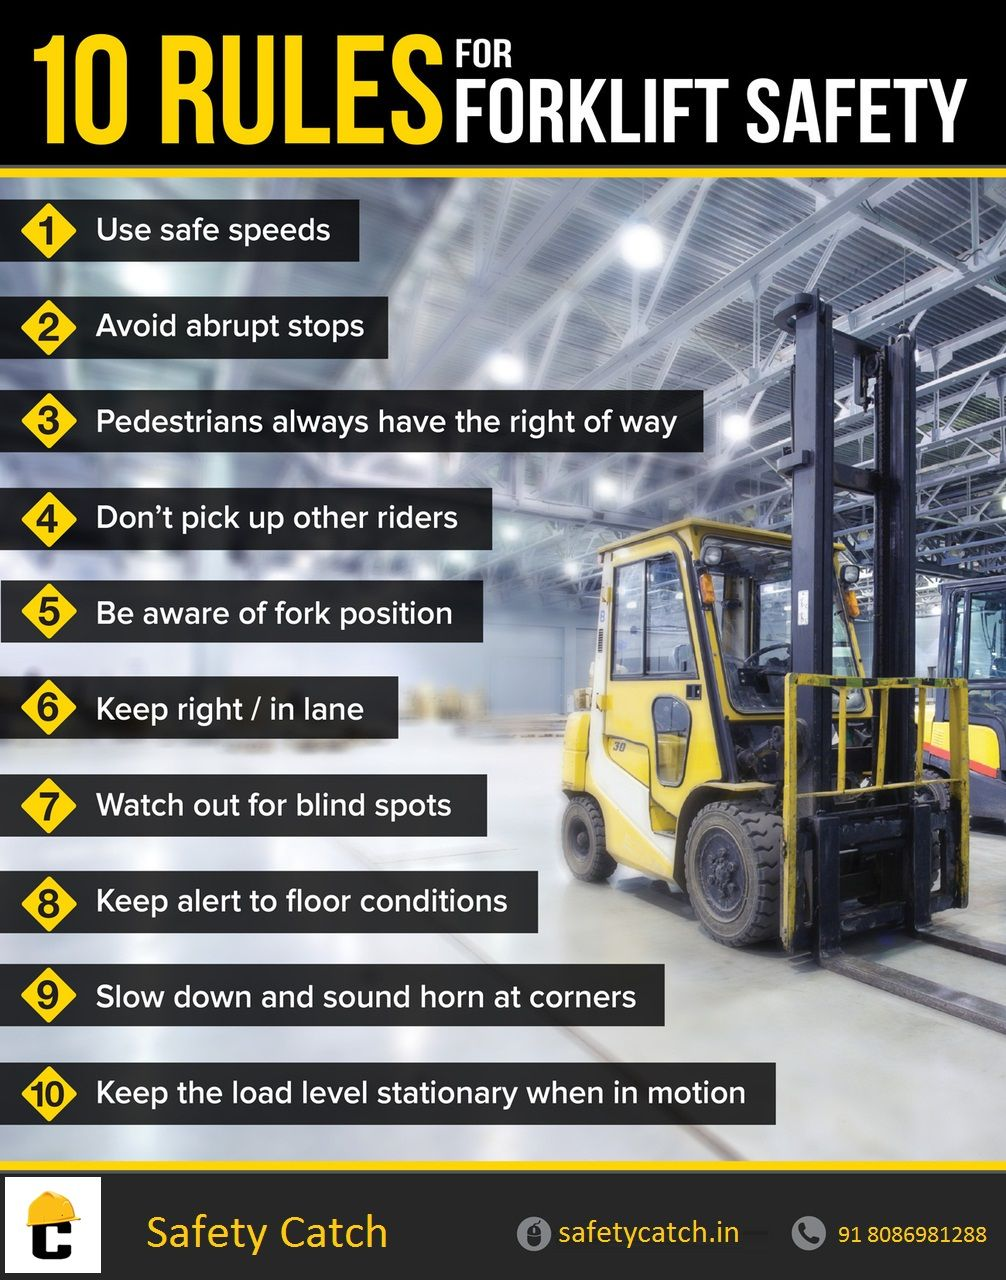 Forklift safety tips for safety workers safety tips 10 rules for forklift safety forklift training 1betcityfo Choice Image